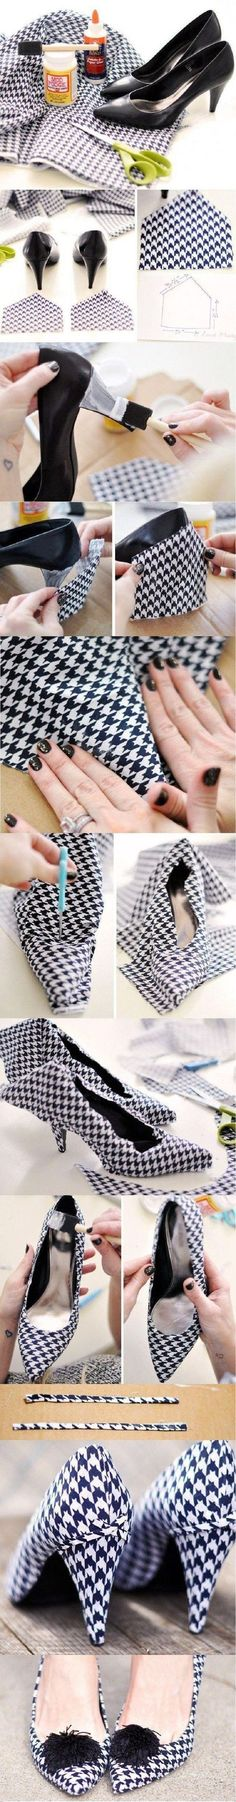 Without the pom pom and different fabric Top 10 Unique DIY Heels Ideas. These are the best ideas I've seen for changing shoes. There are some really ideas here. Diy Fashion, Ideias Fashion, Fashion Shoes, Fashion Fabric, Runway Fashion, Fashion Trends, Fashion Diva Design, Shoe Makeover, Diy Kleidung